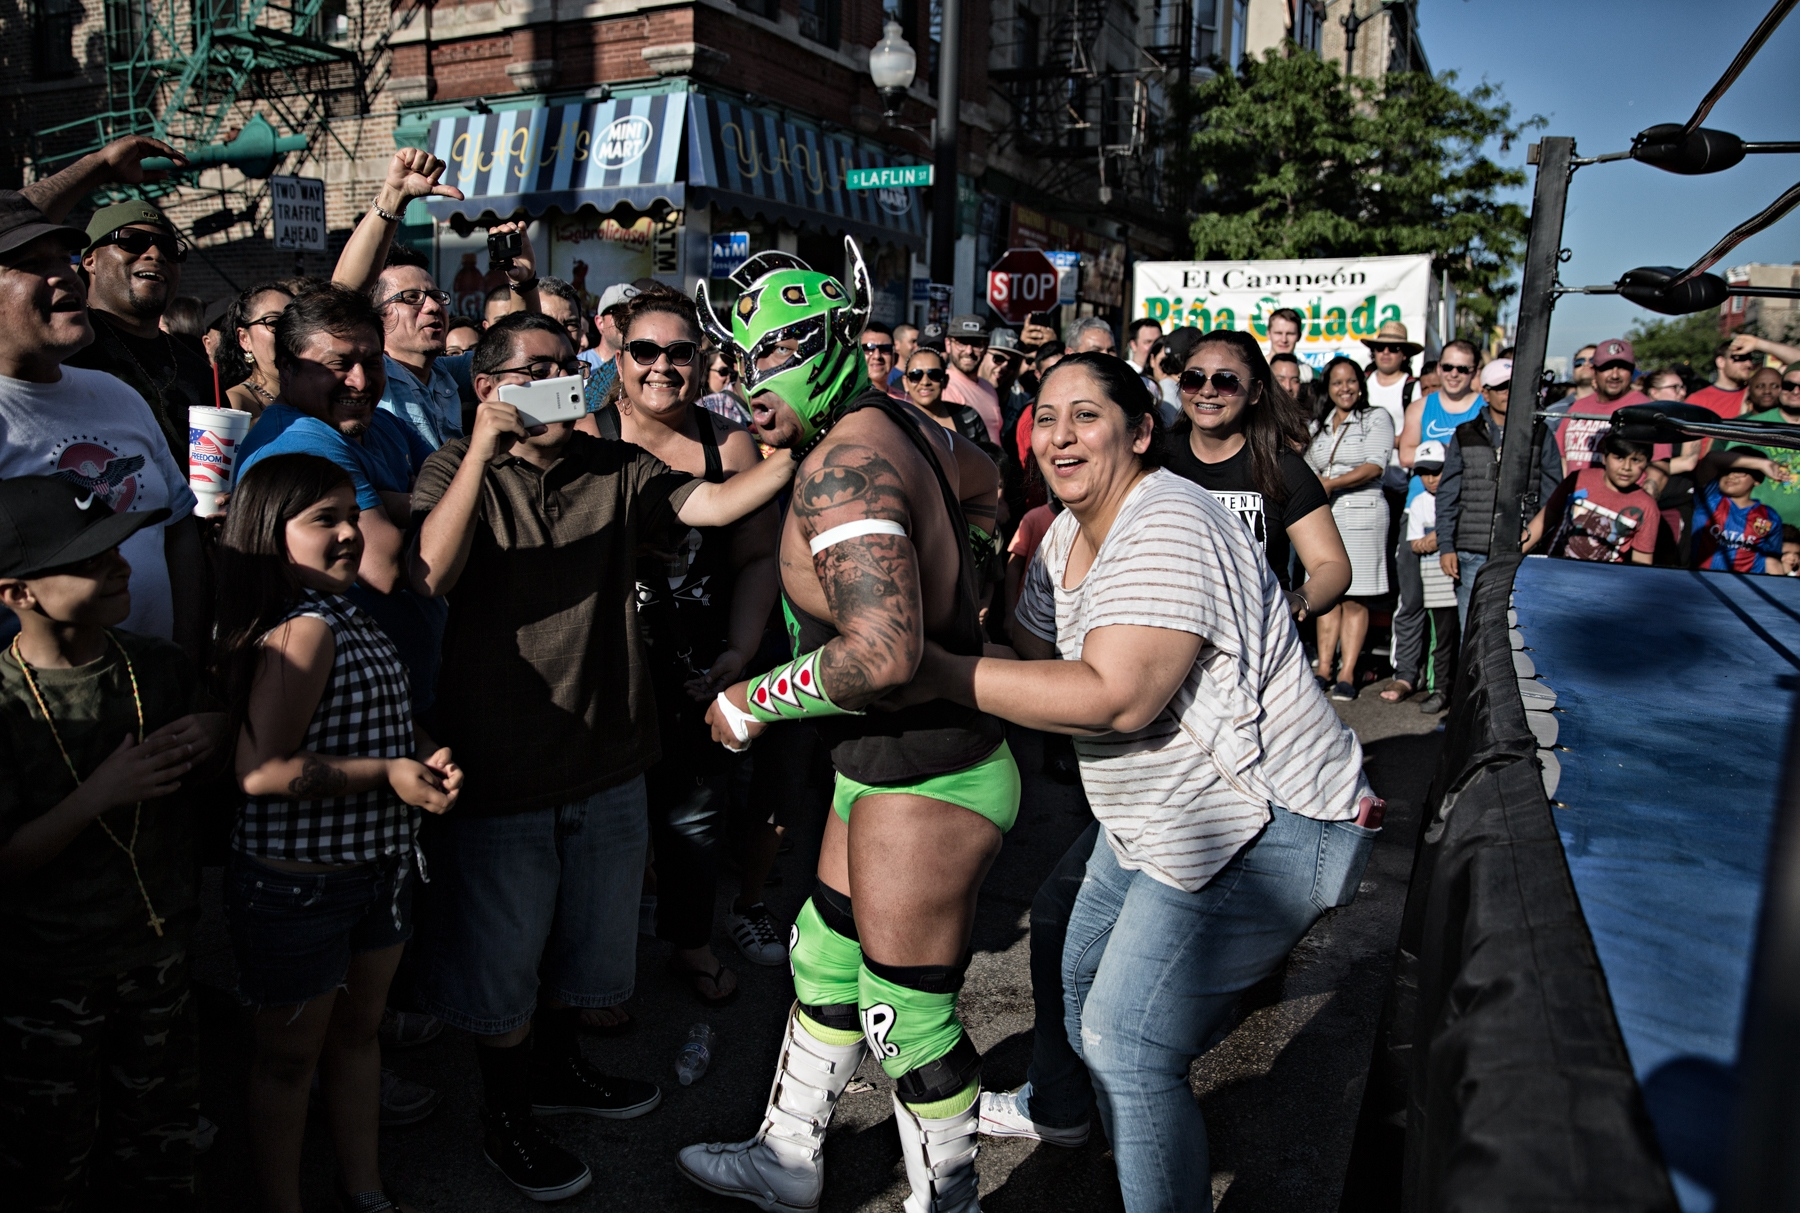 Rudos (the evil ones) often get into a verbal assault with the member of the public. Spectators are an integral part of the lucha libre and their participation, either rooting for their favorite luchador or insulting the luchador they disfavor is an expectation of the spectacle. Skayde Junior Autentico, says he likes to be a rudo because it allows him to freely taunt the spectators and his opponents during a match.